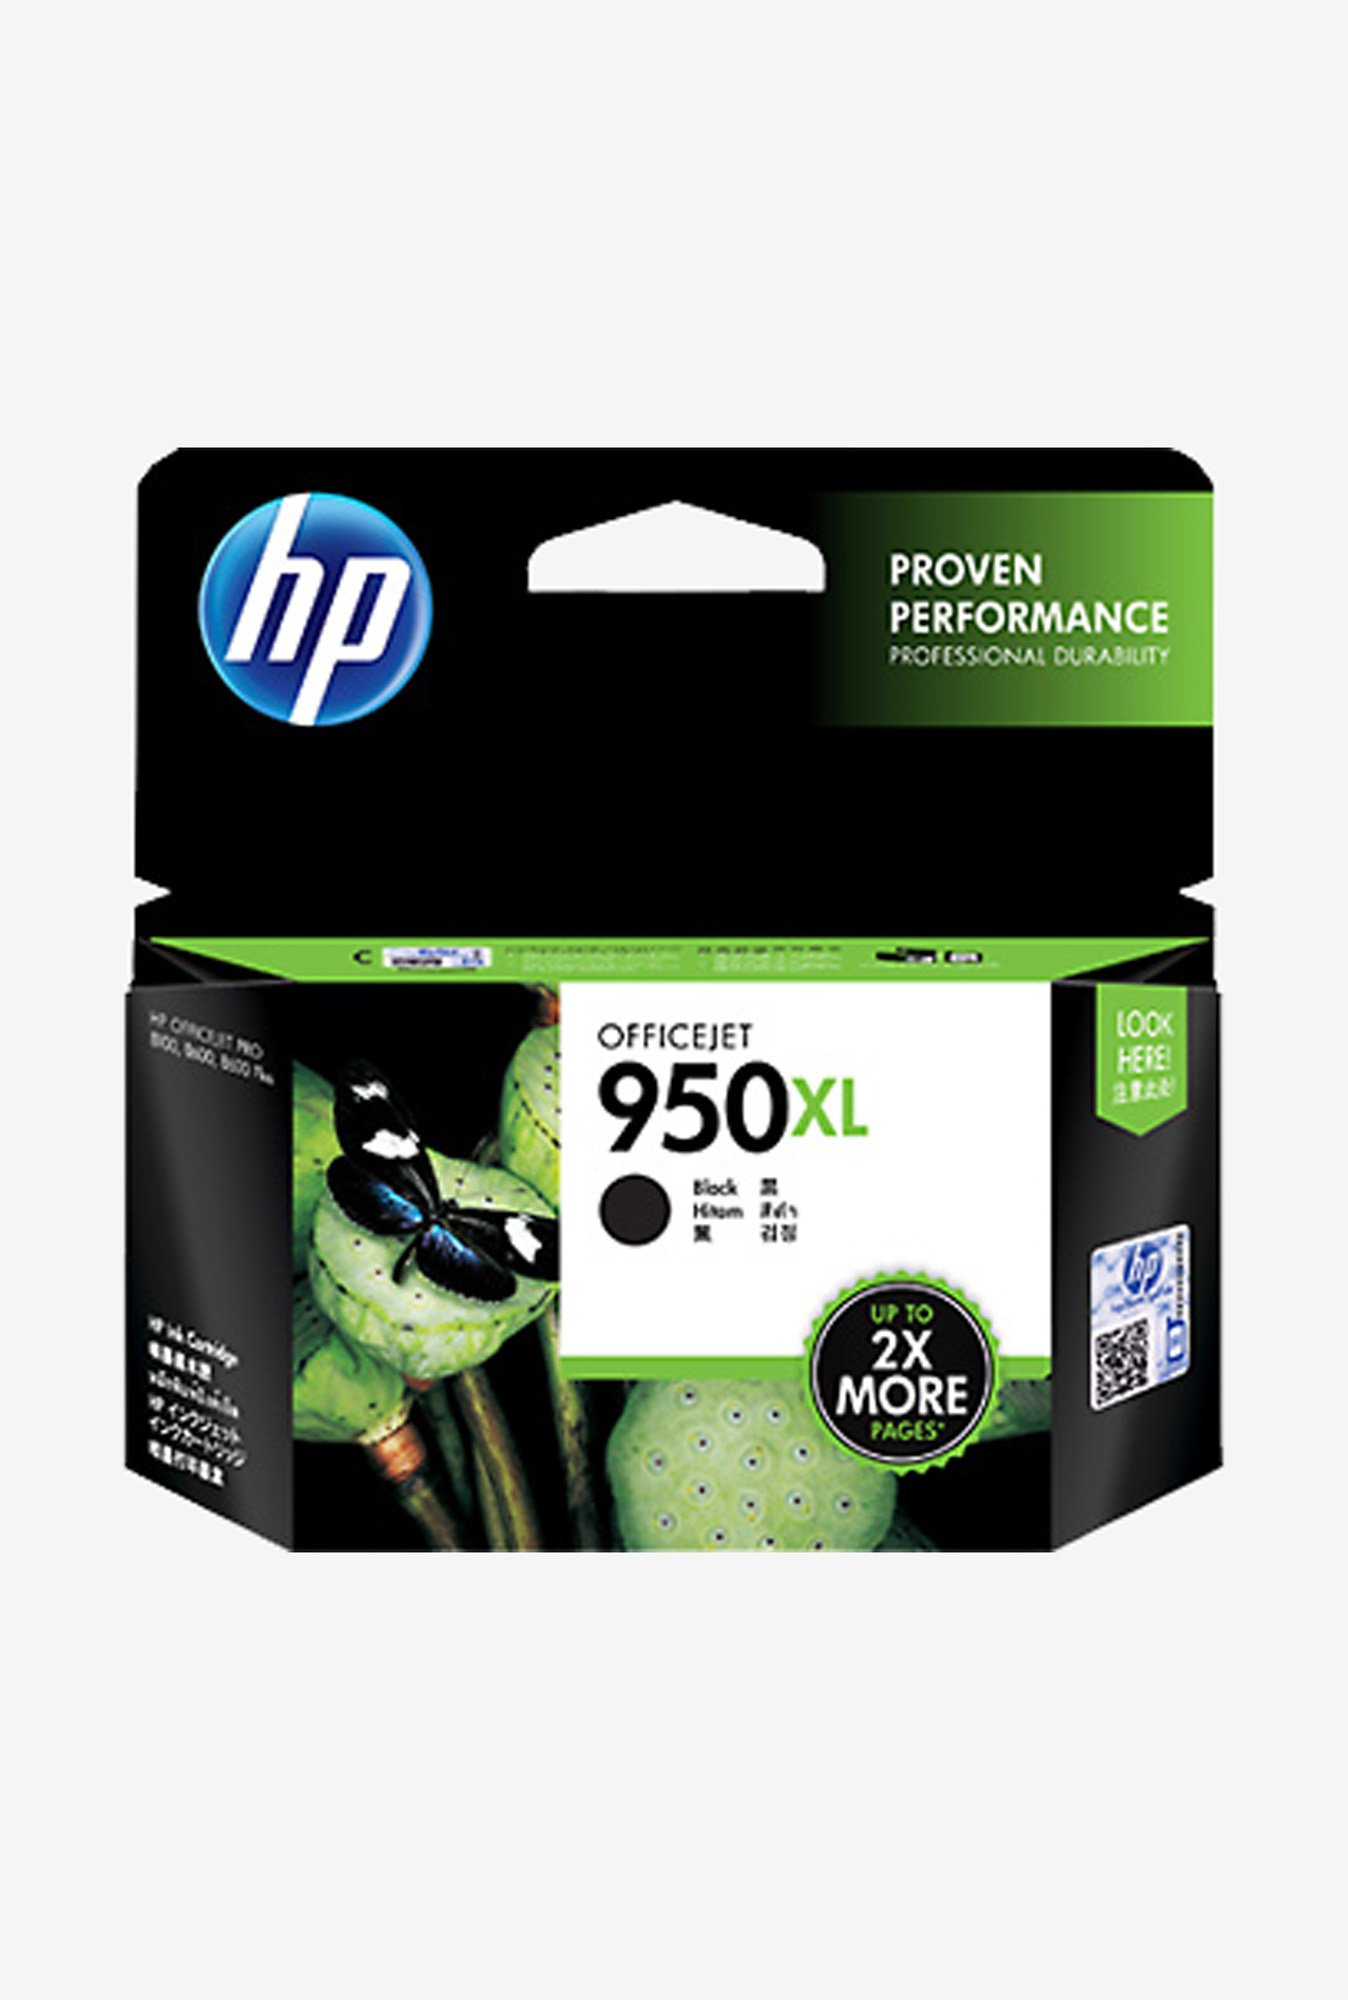 HP 950XL CN045AA Cartridge Black